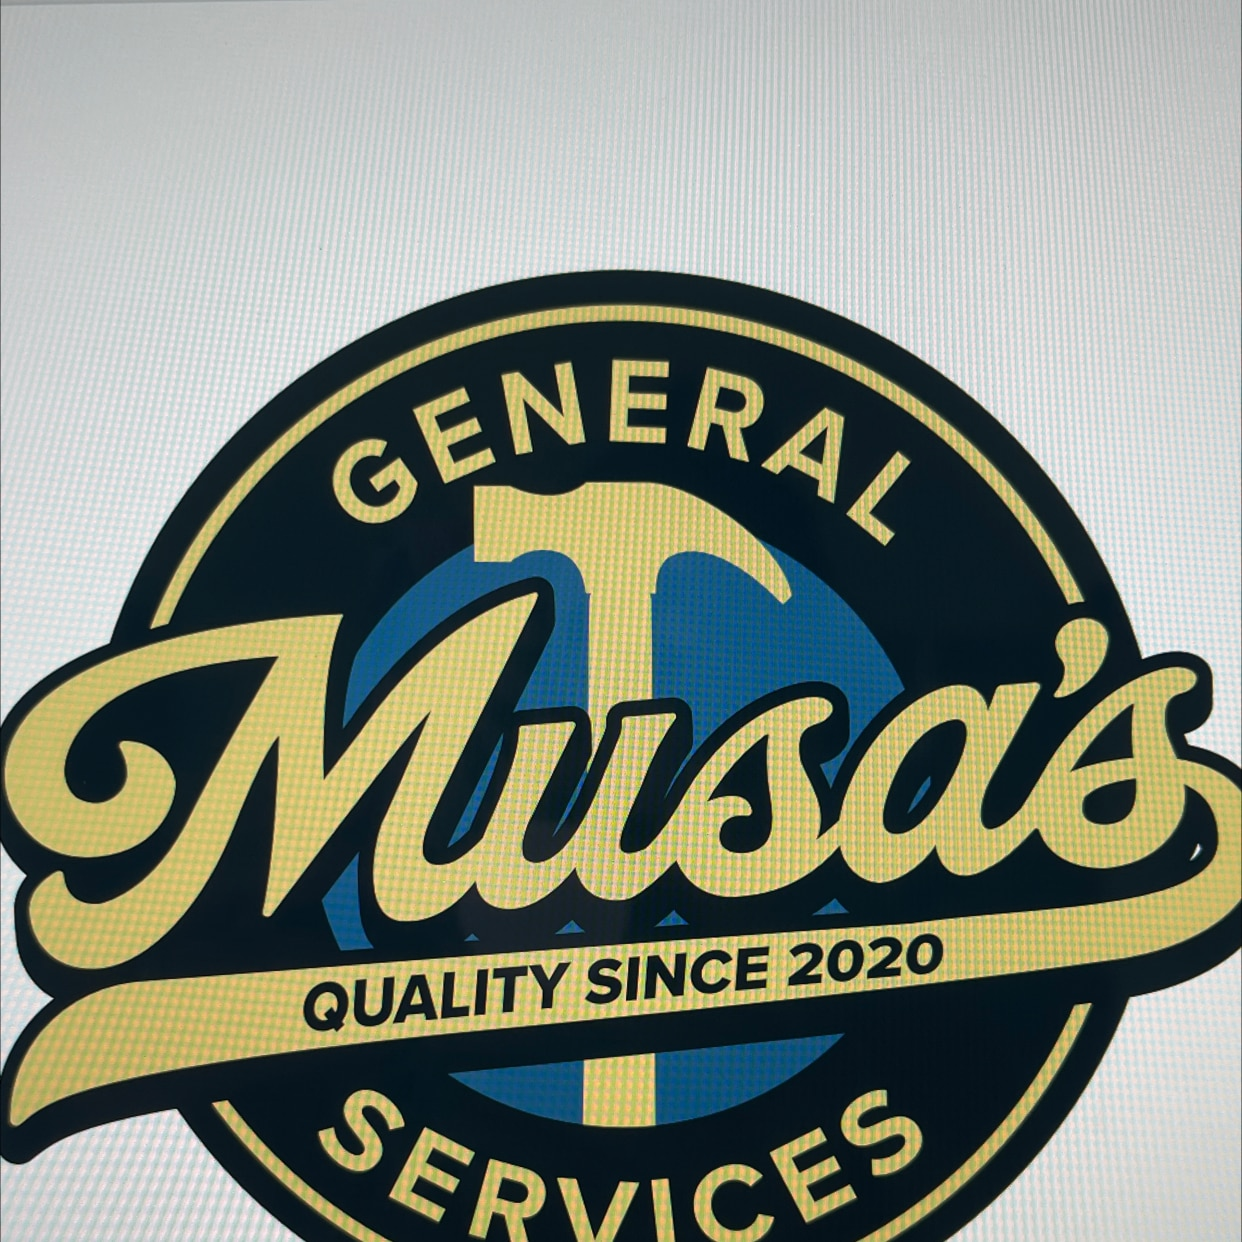 Musa's General Service logo